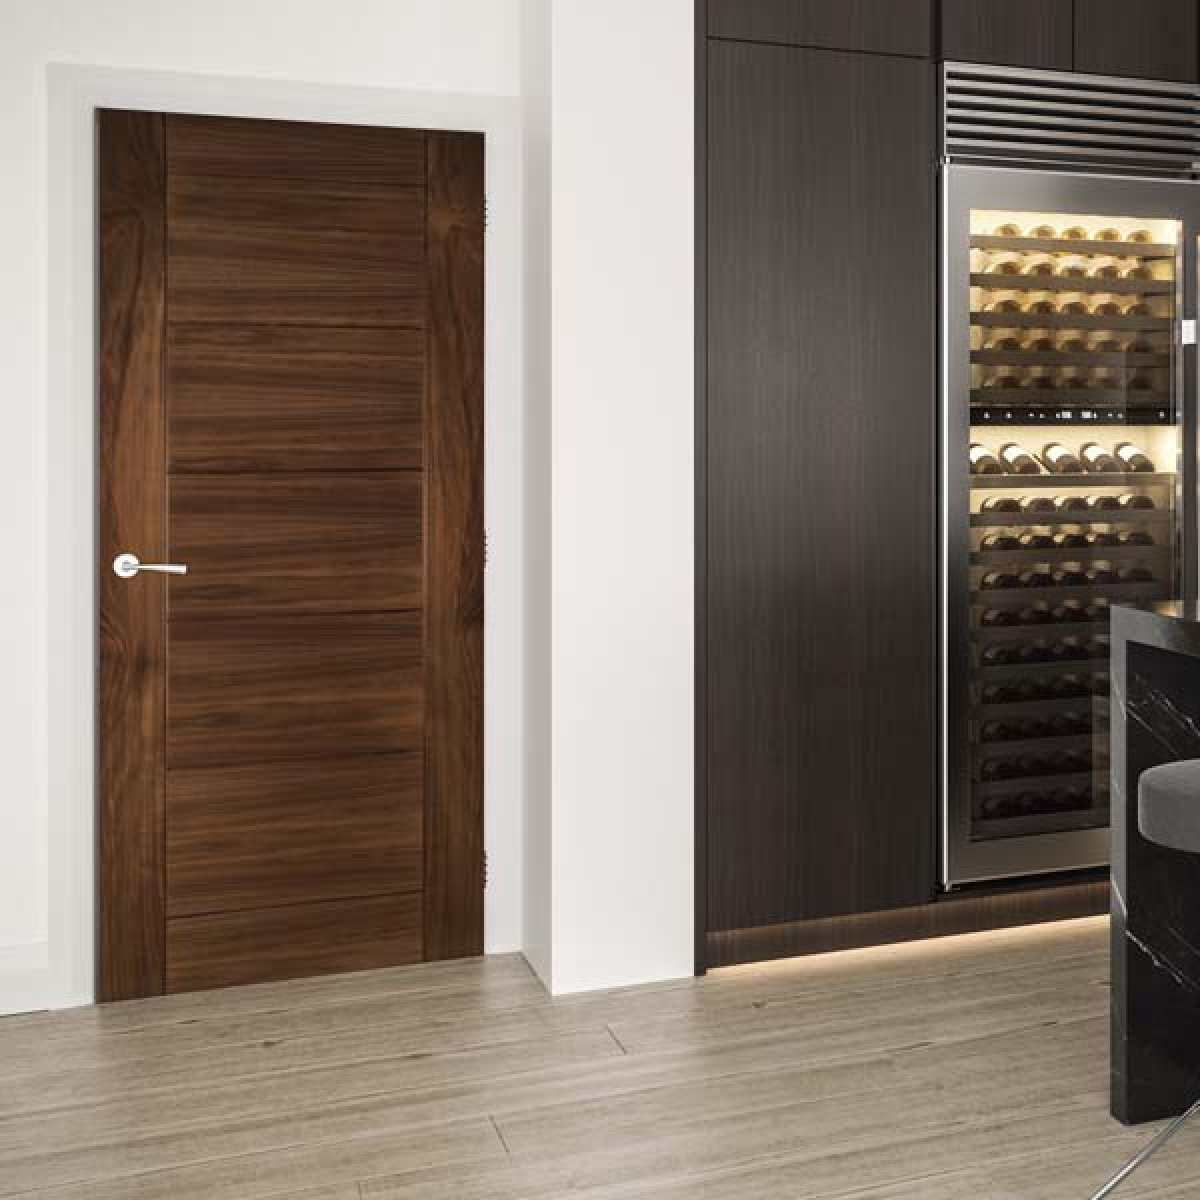 seville walnut lifestyle websters Image by Websters Timber